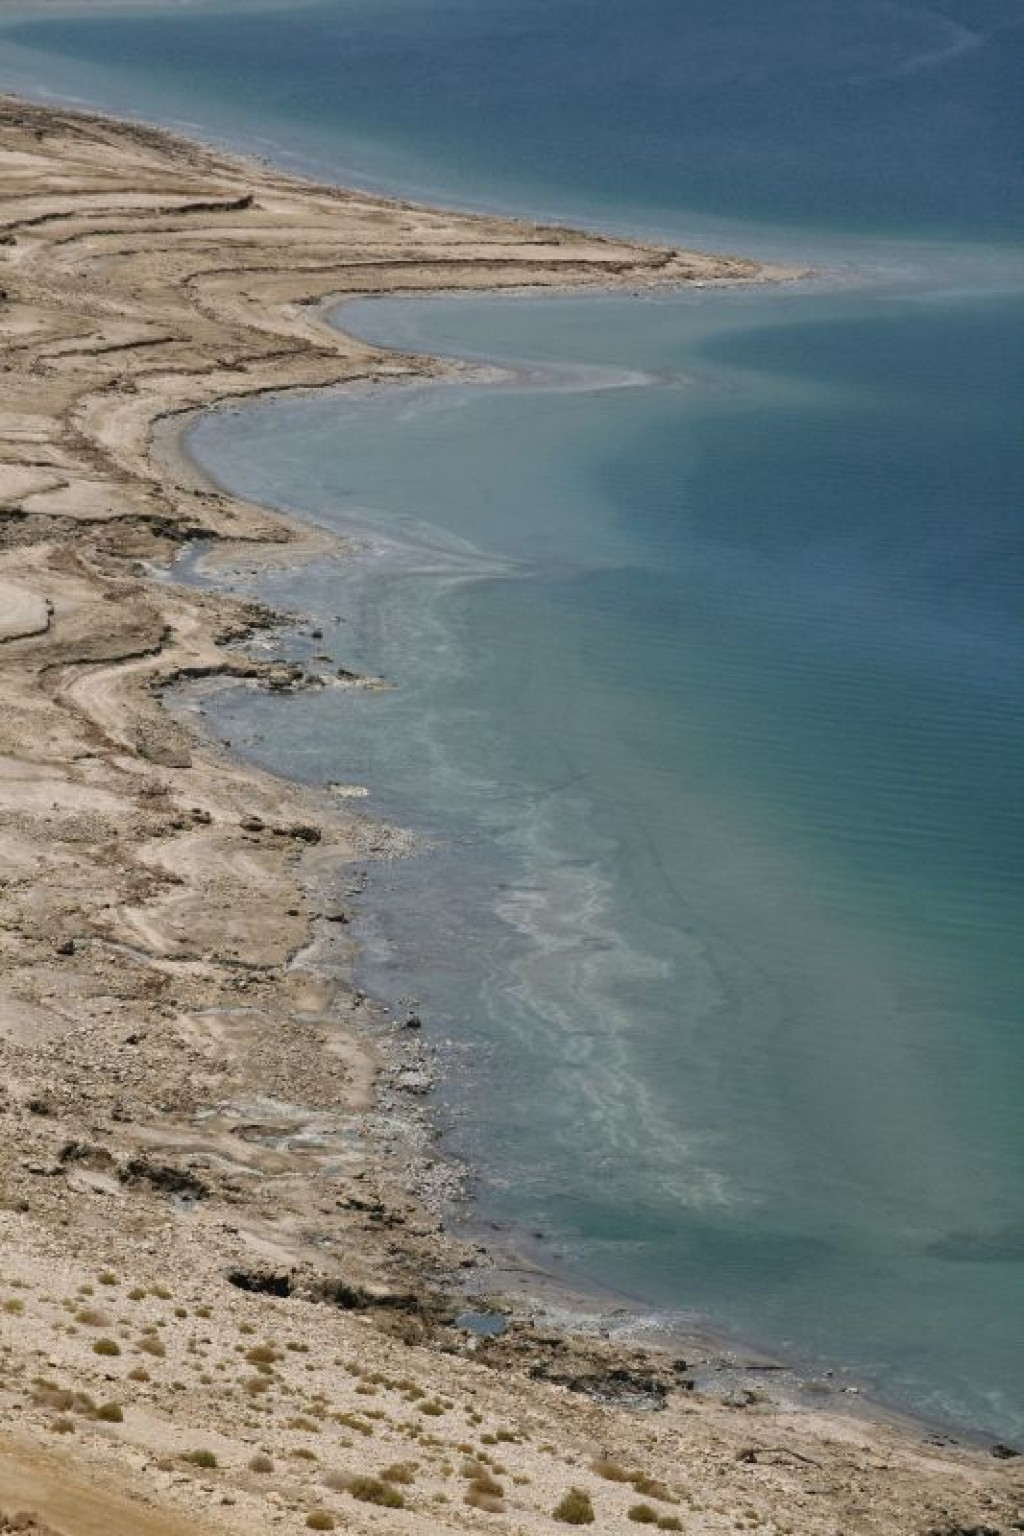 The Dead Sea is an amazing landscape. We rented a car and drove the length of it.